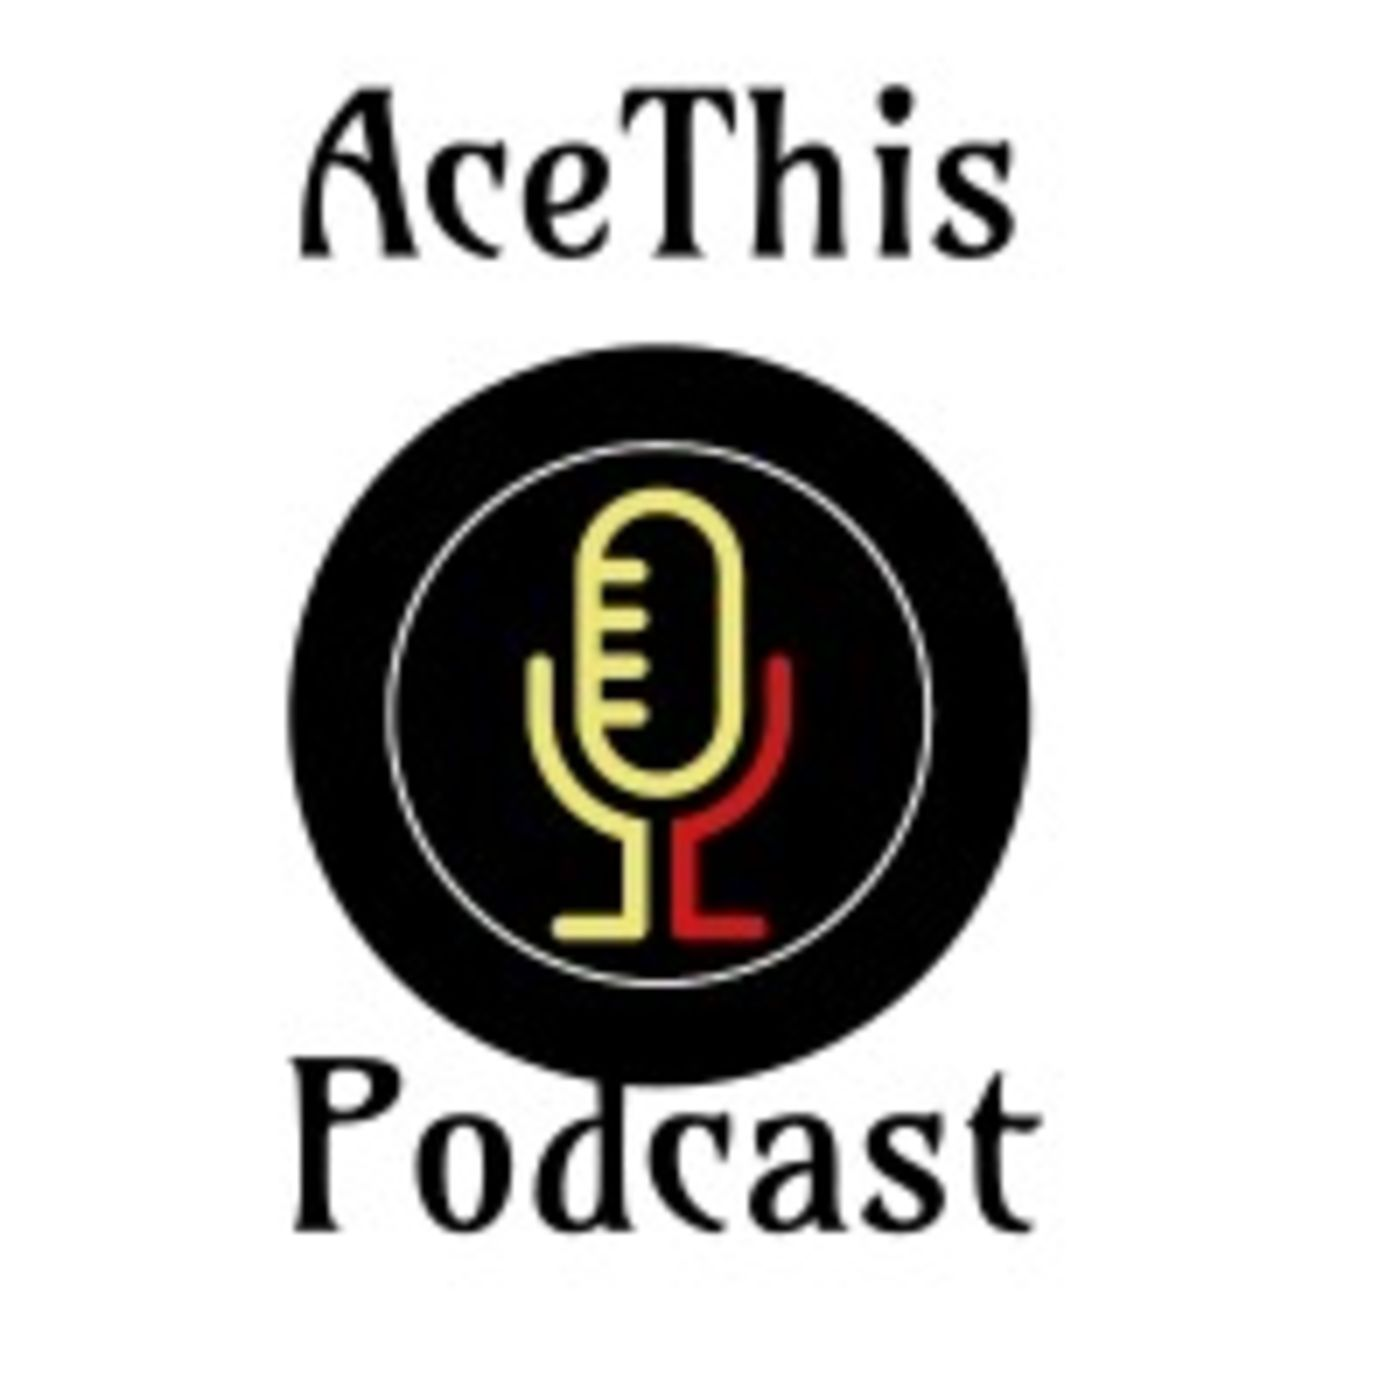 Listen to ACEThis Podcast episodes free, on demand. Three